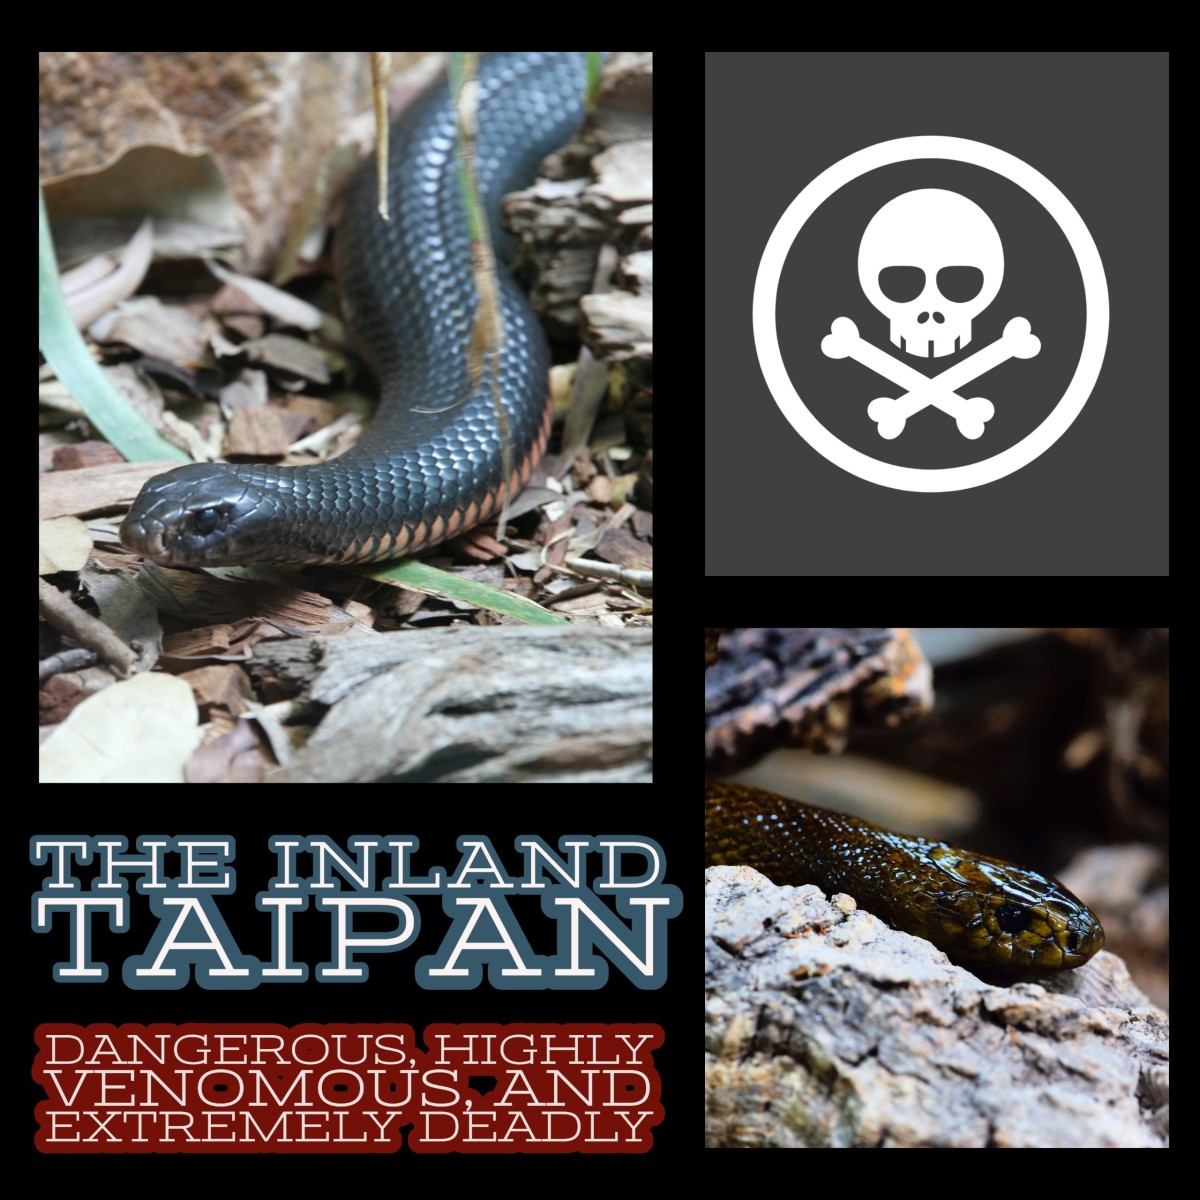 The Inland Taipan: Dangerous, Highly Venomous, and Extremely Deadly.